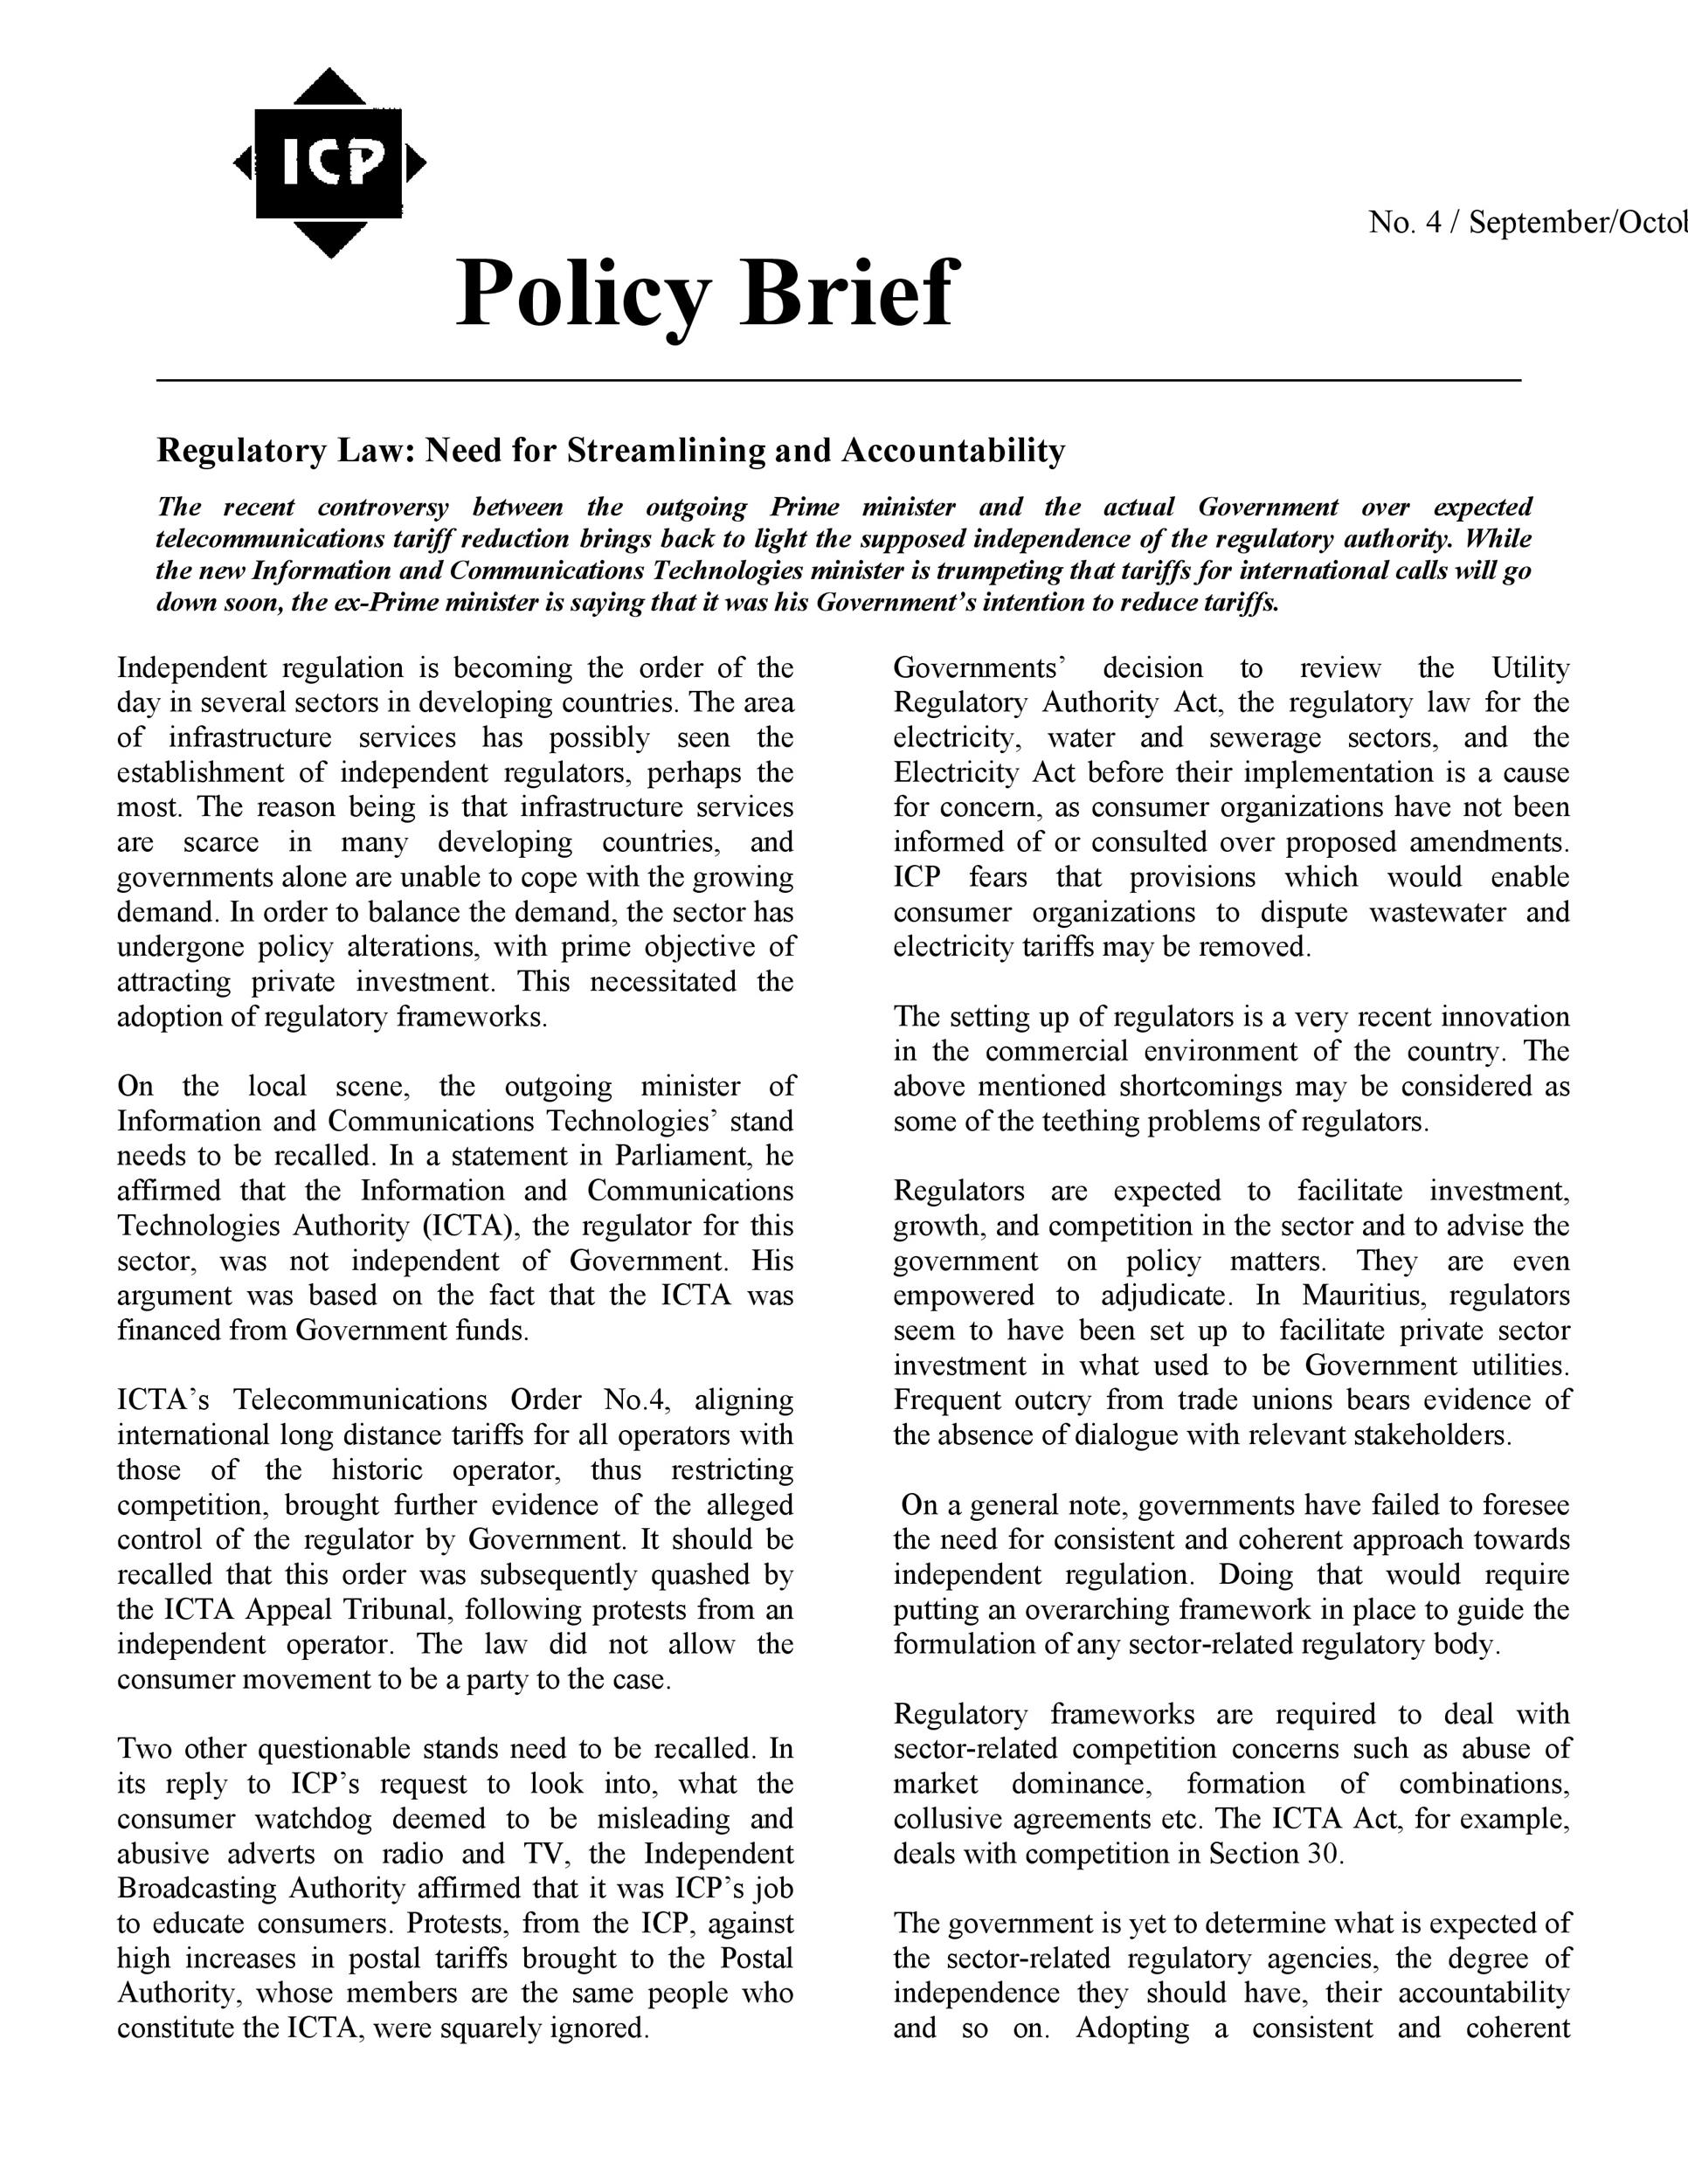 Free policy brief template 17